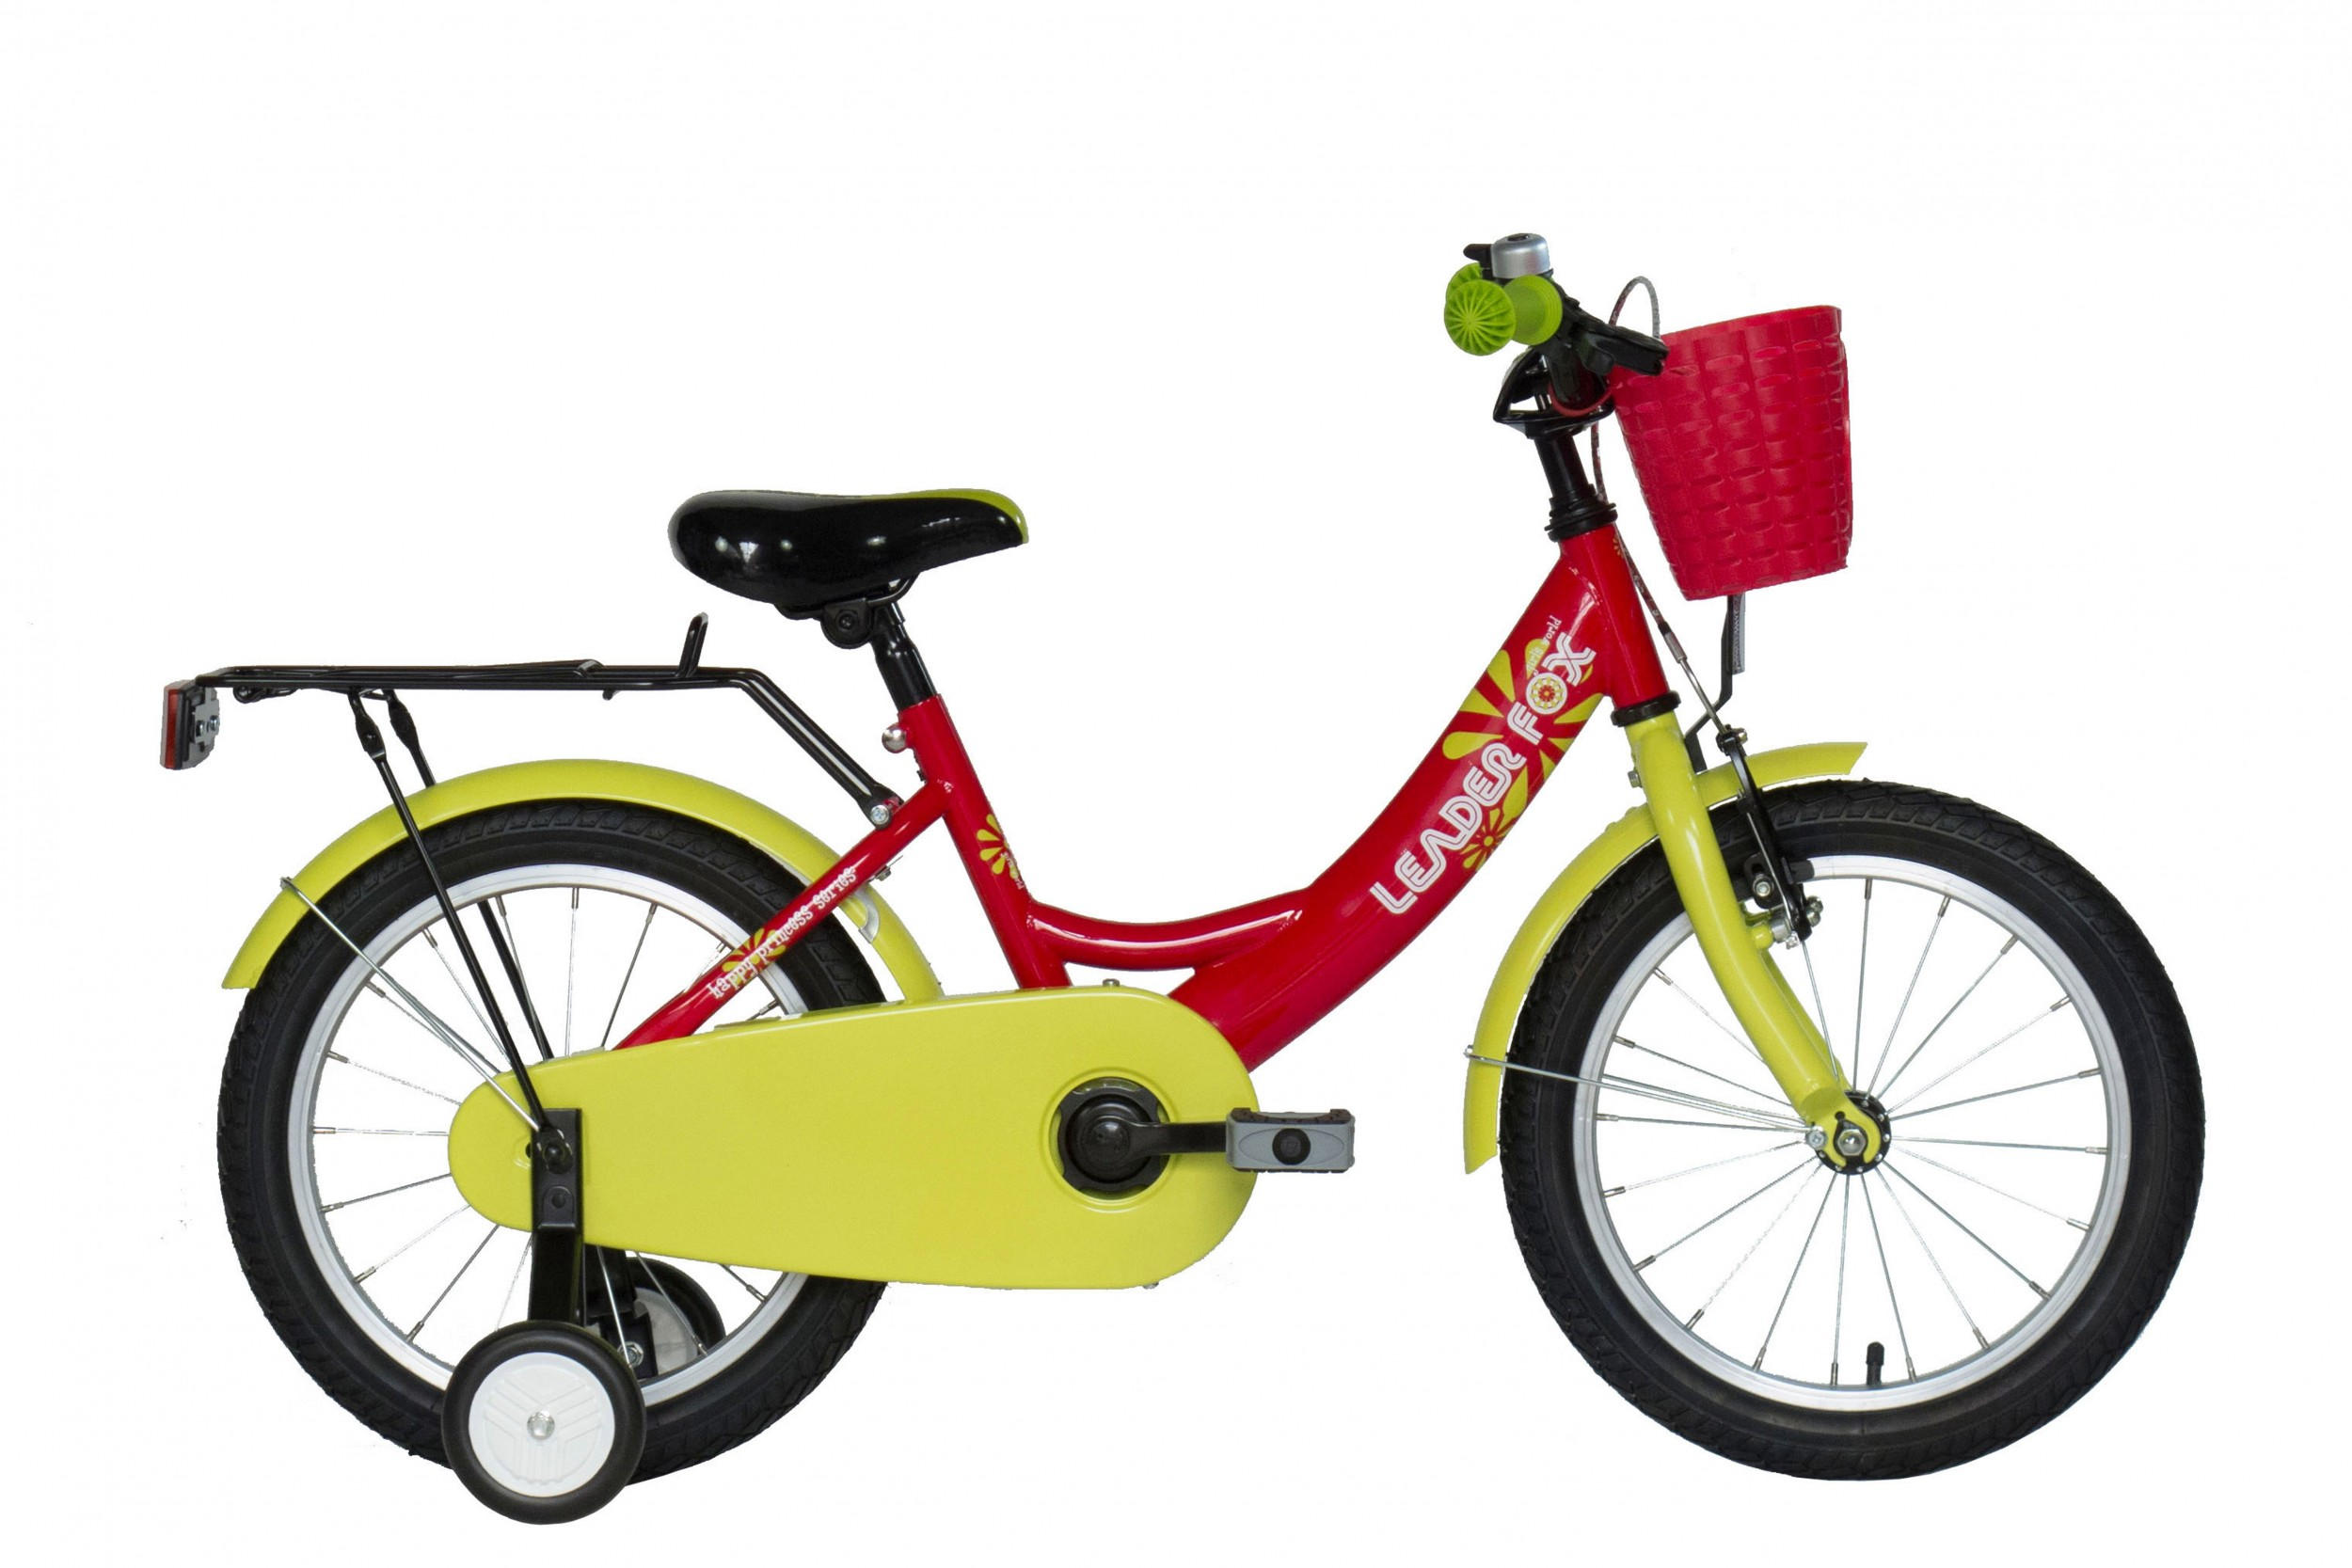 Leader Fox Pony Girls Bicycle 16 Inch 23cm - Red